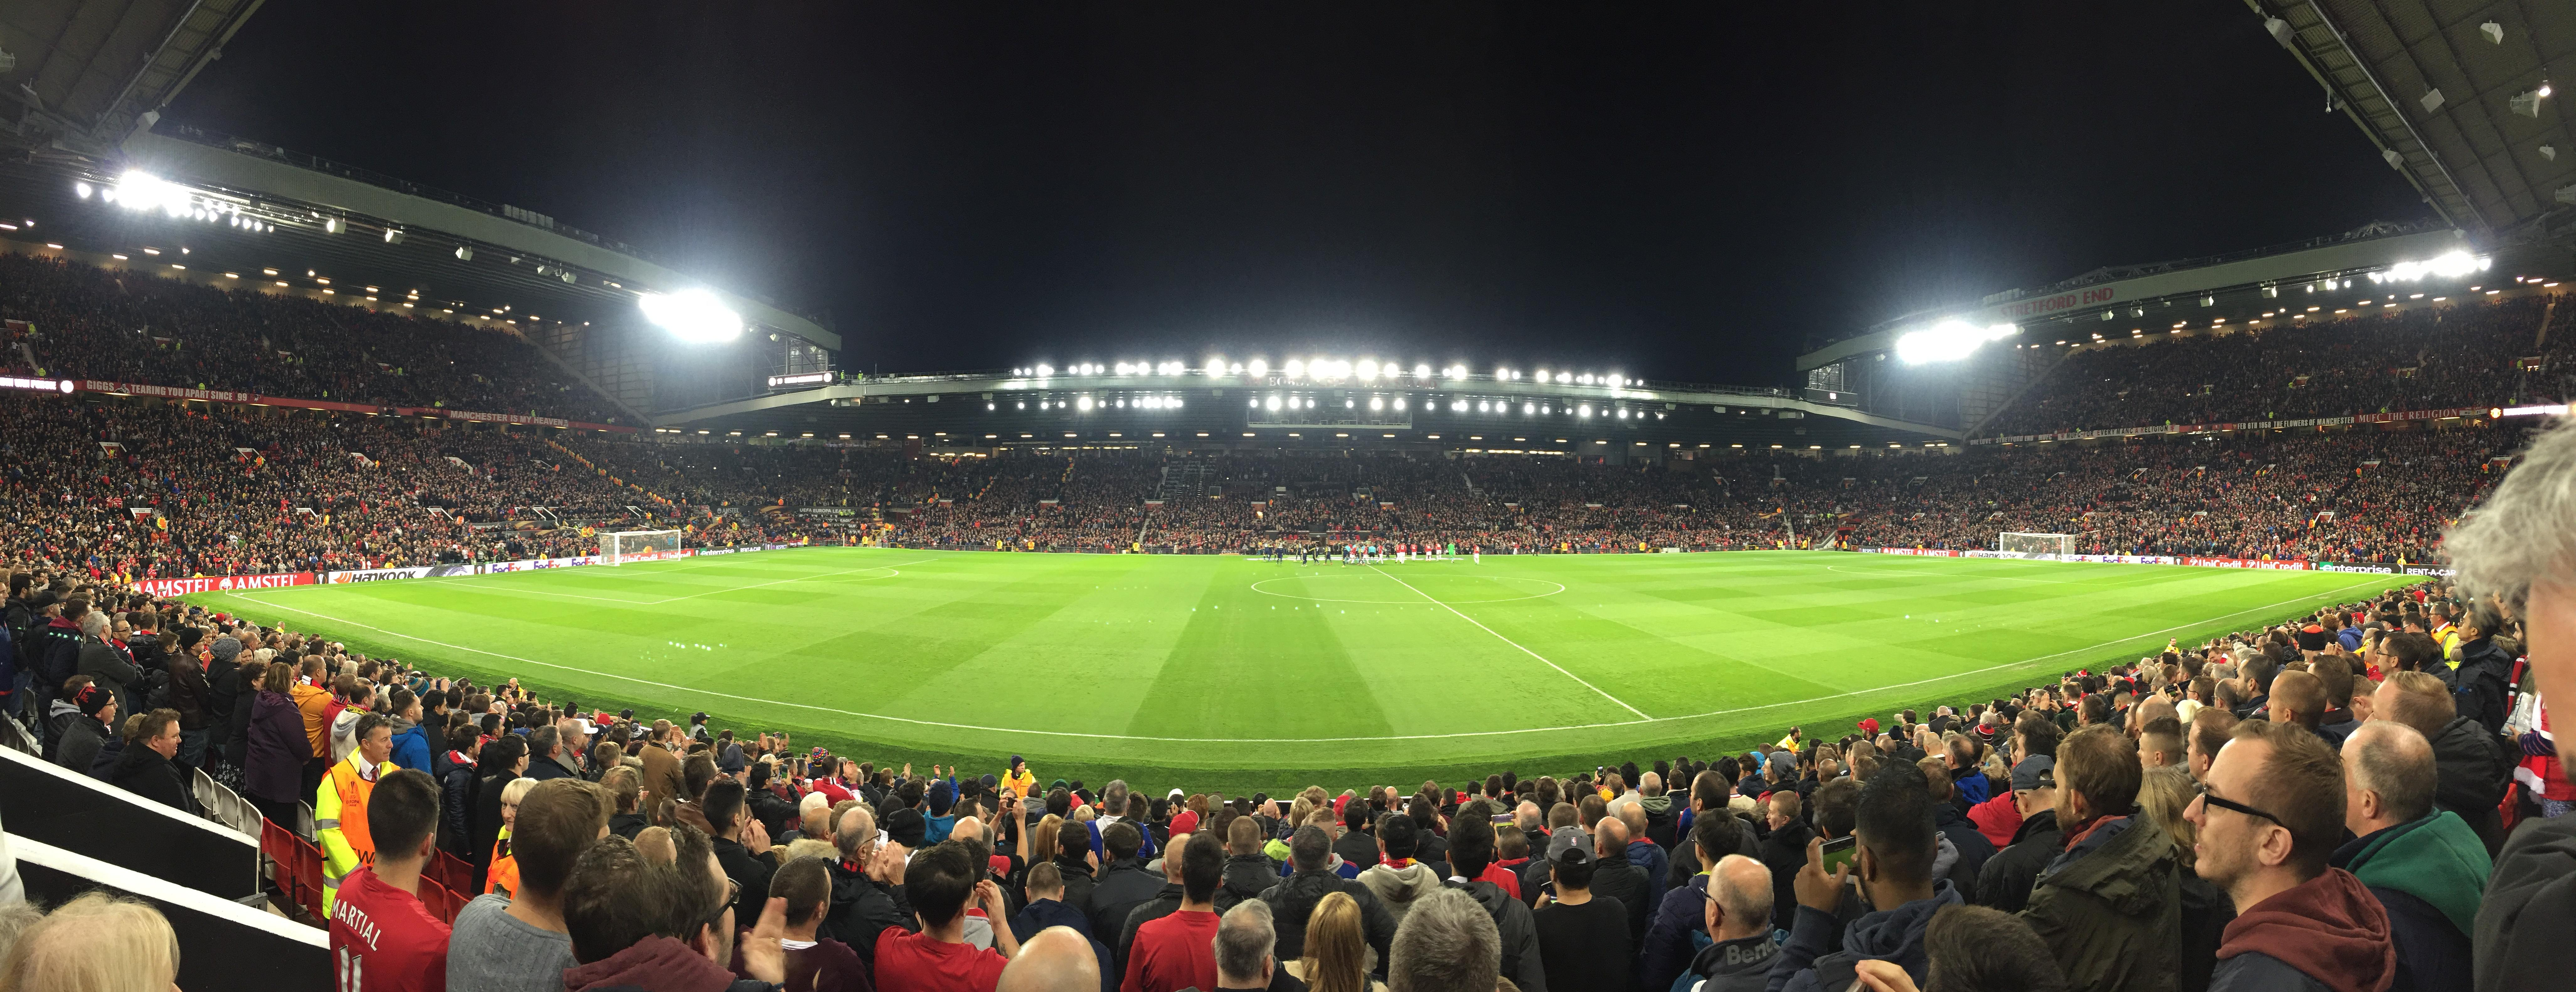 Old Trafford Section N1406 Row 1 Seat 173